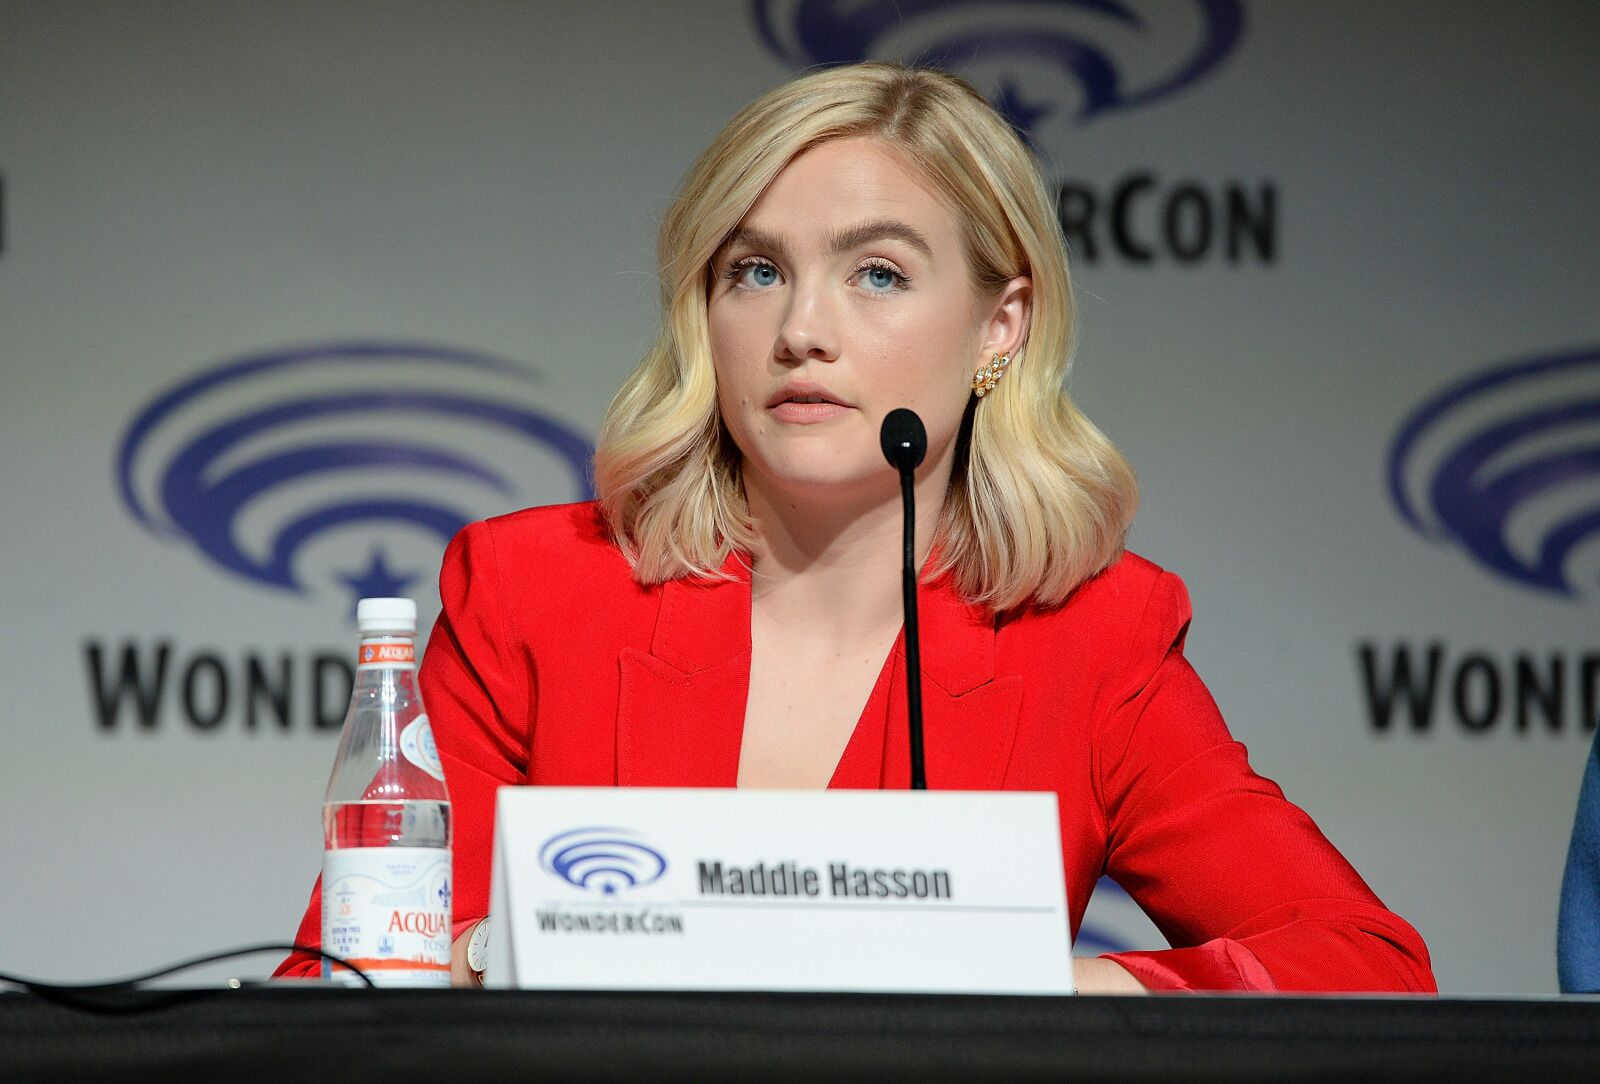 Impulse star Maddie Hasson joins James Wan's new movie